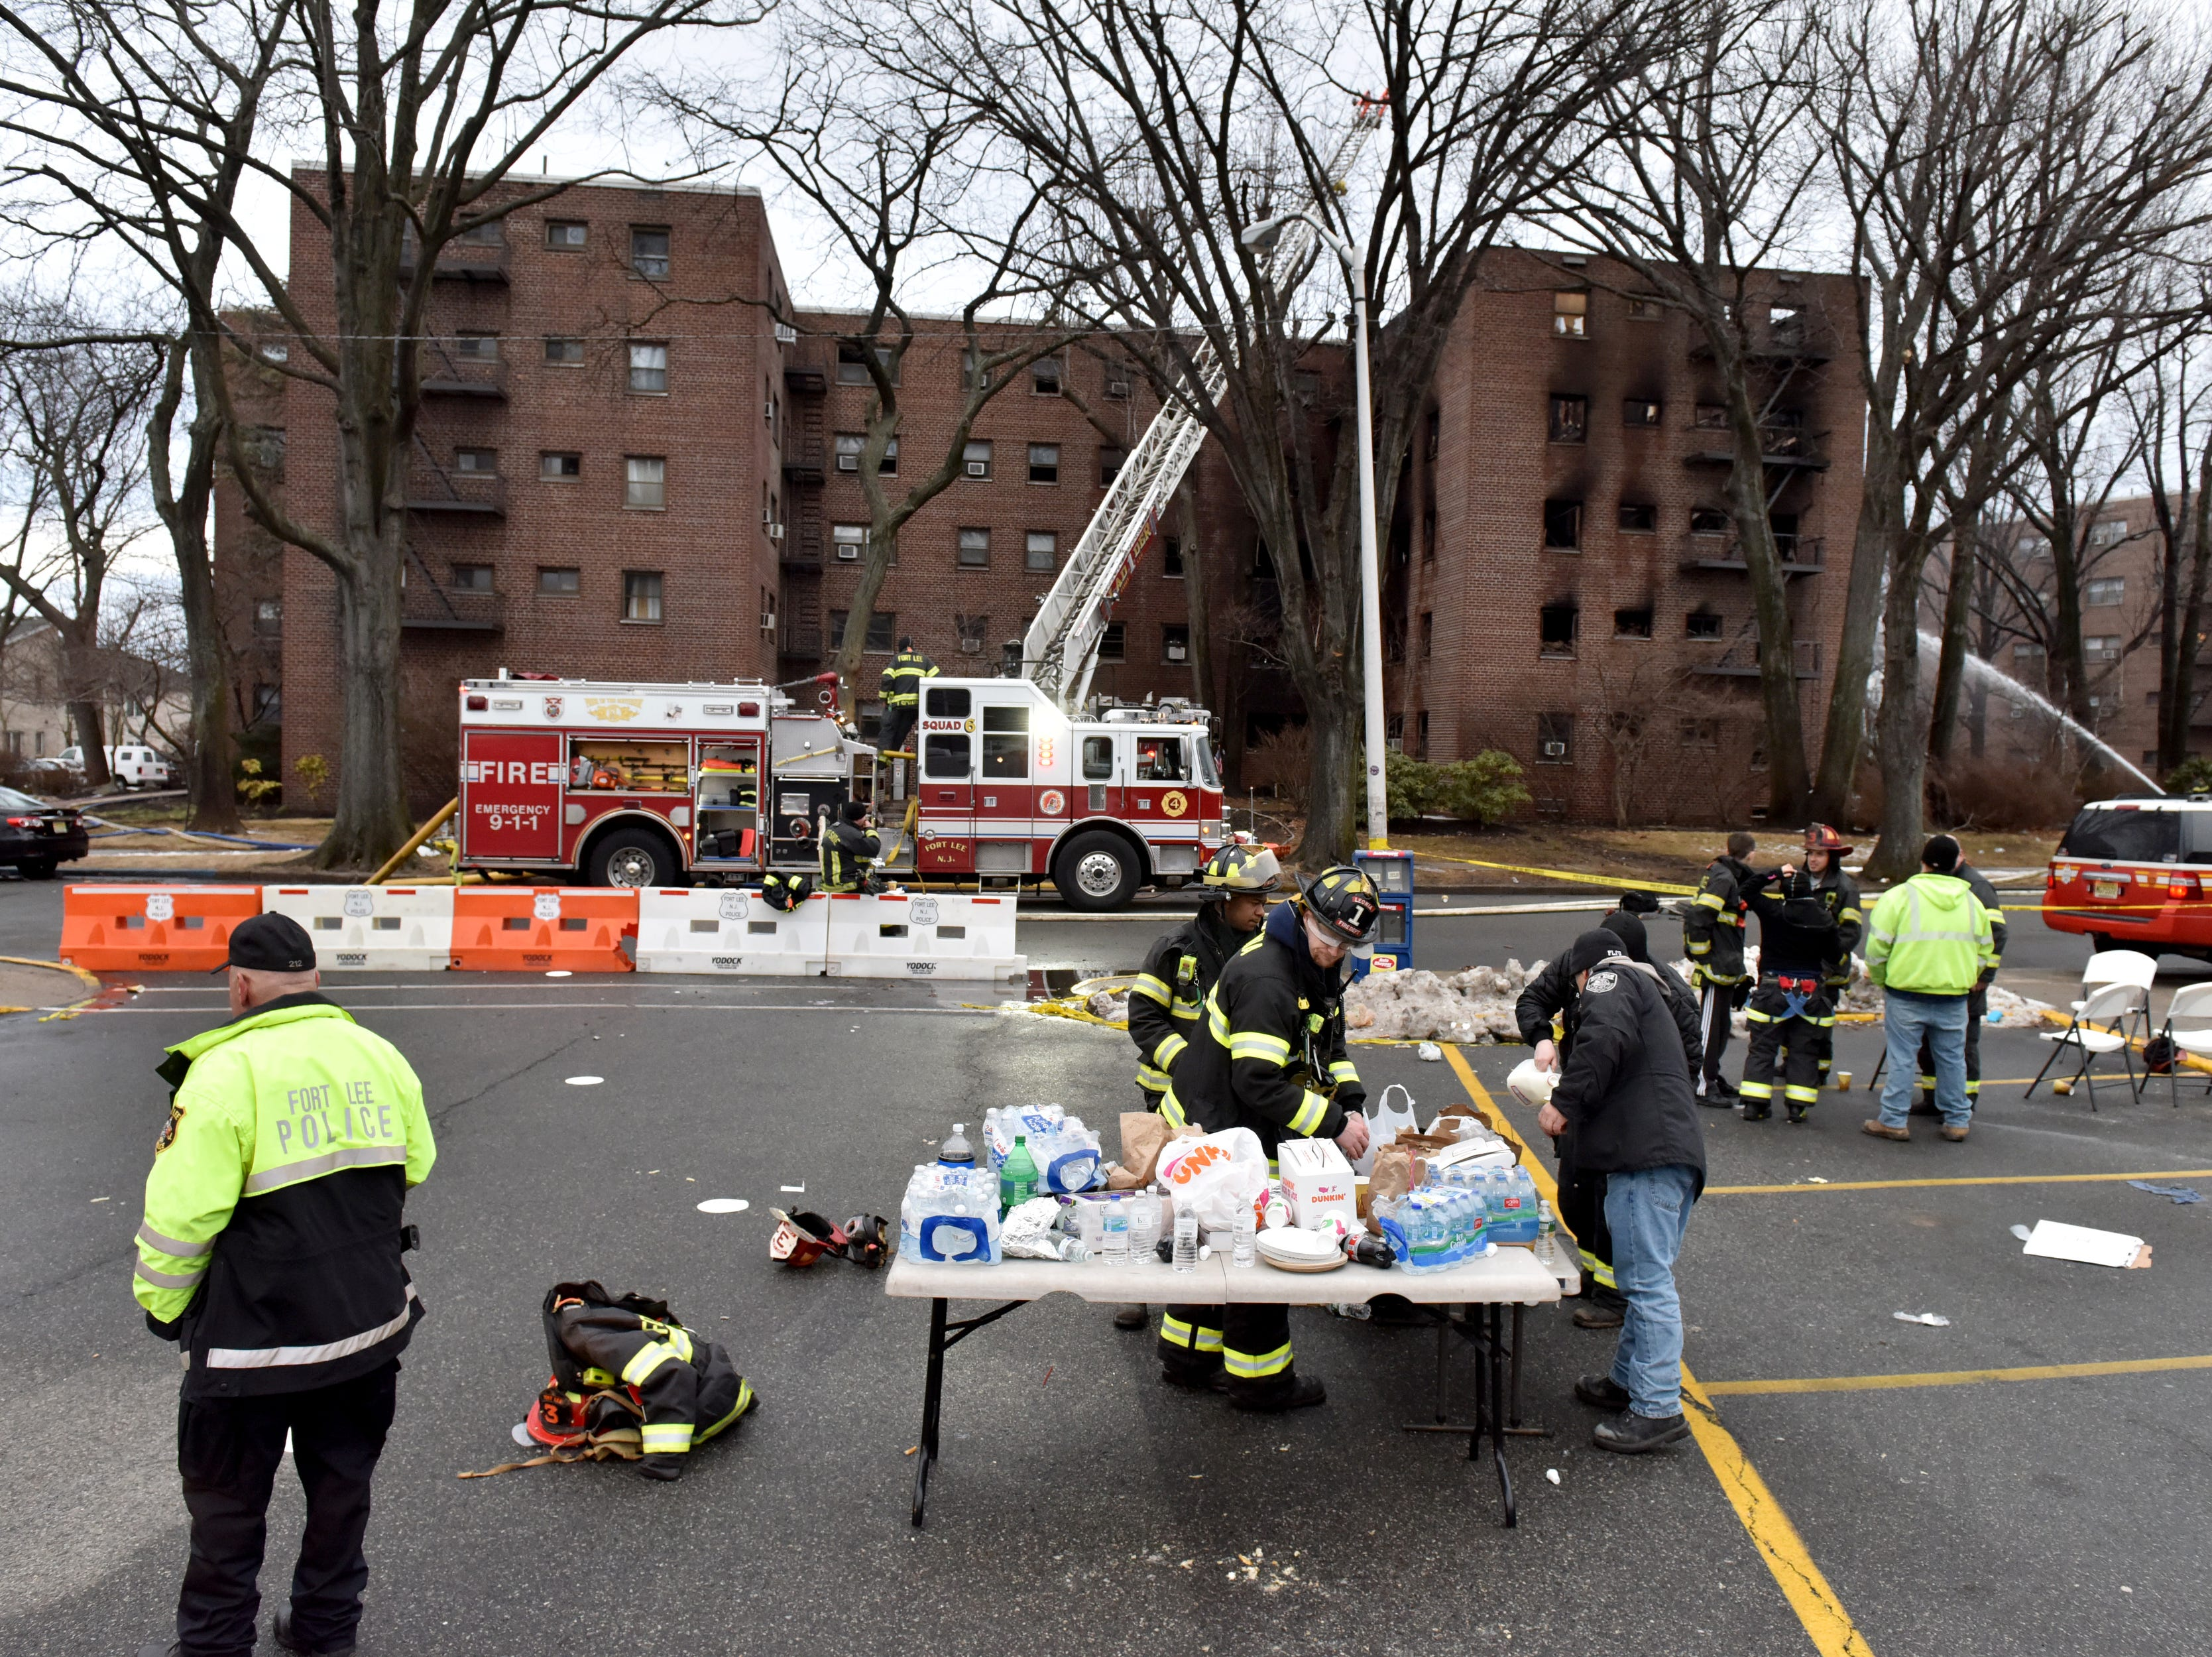 Firefighters eat breakfast at the fire scene while hitting hot spots the morning after a fire broke out at an apartment complex on Edwin Ave in Fort Lee on Friday February 15, 2019.